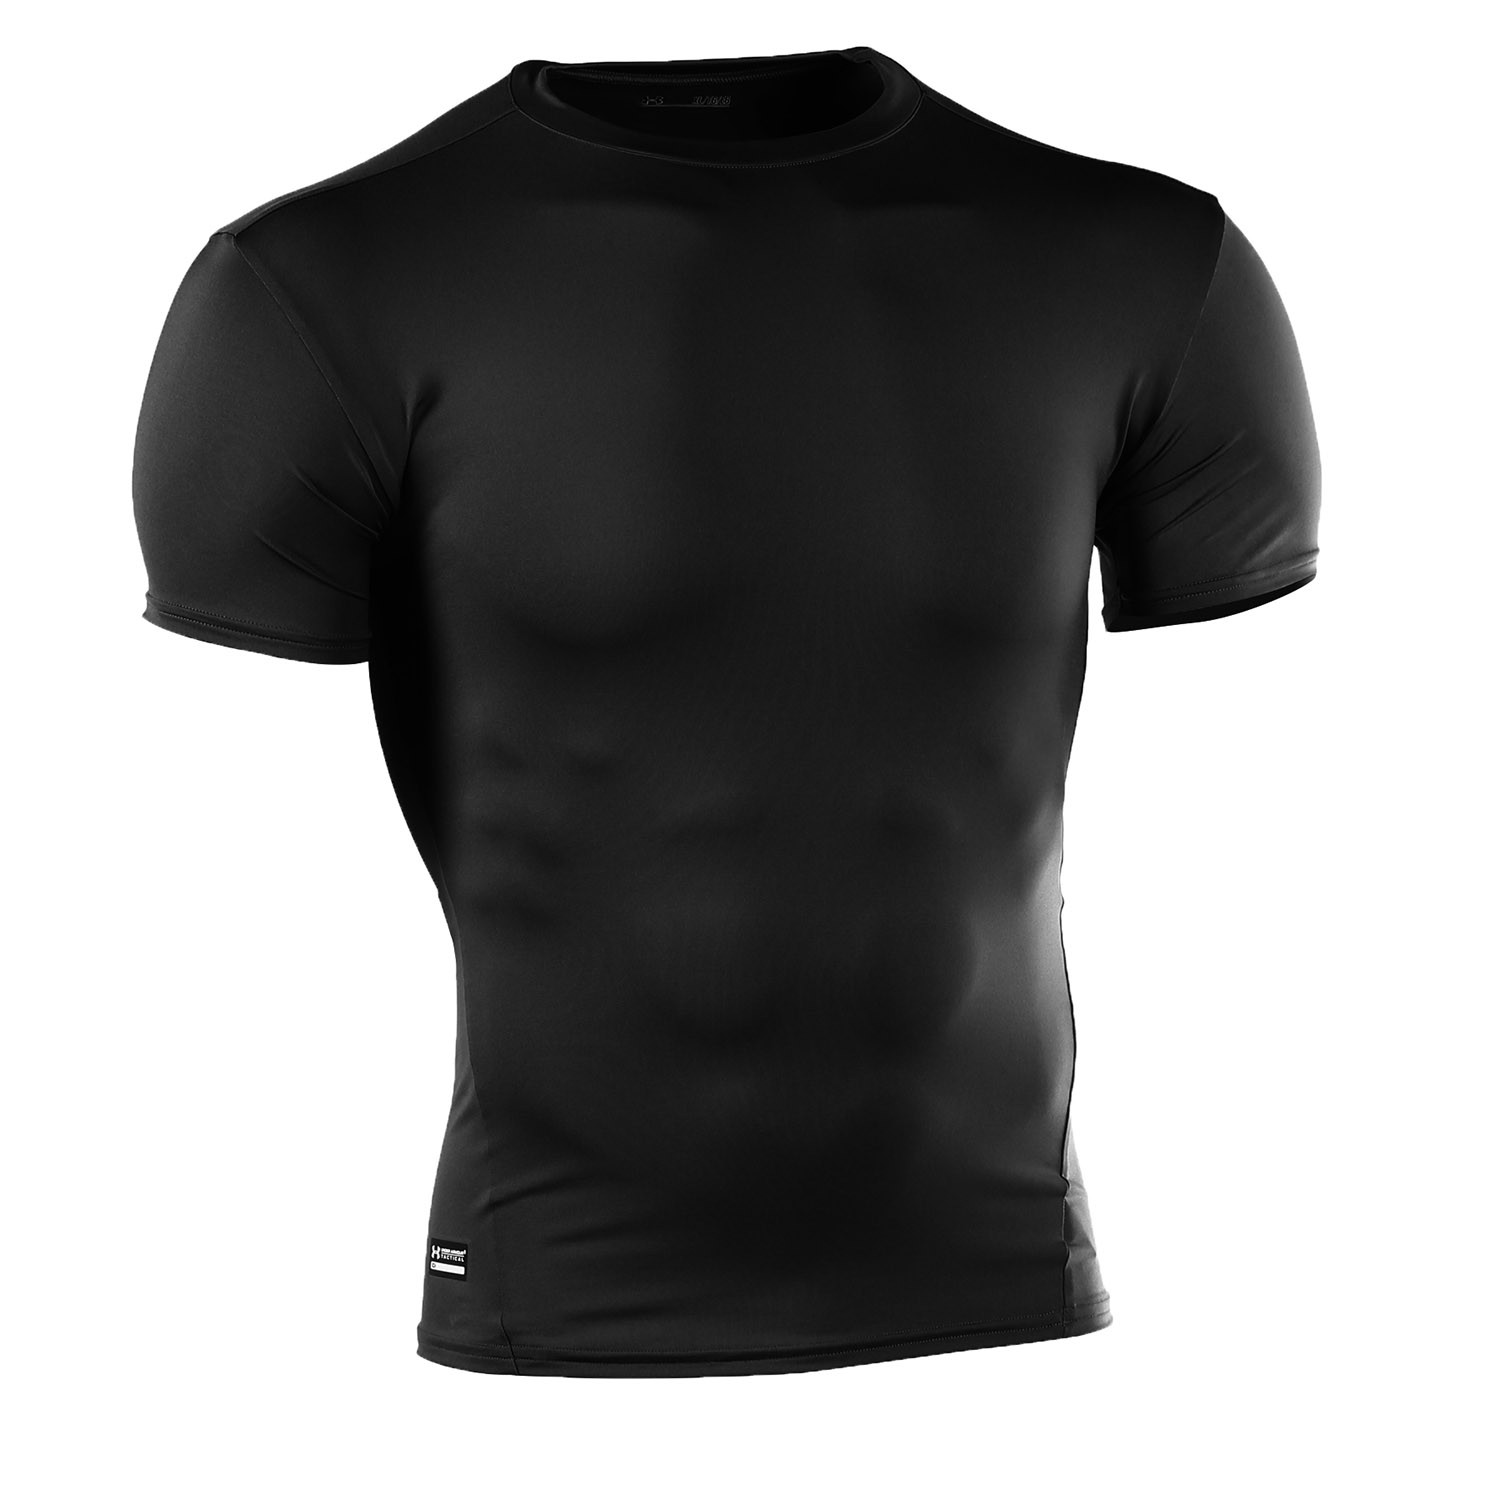 5aee3ab04 The Best Compression Shirts for Men - Garage Gym Builder